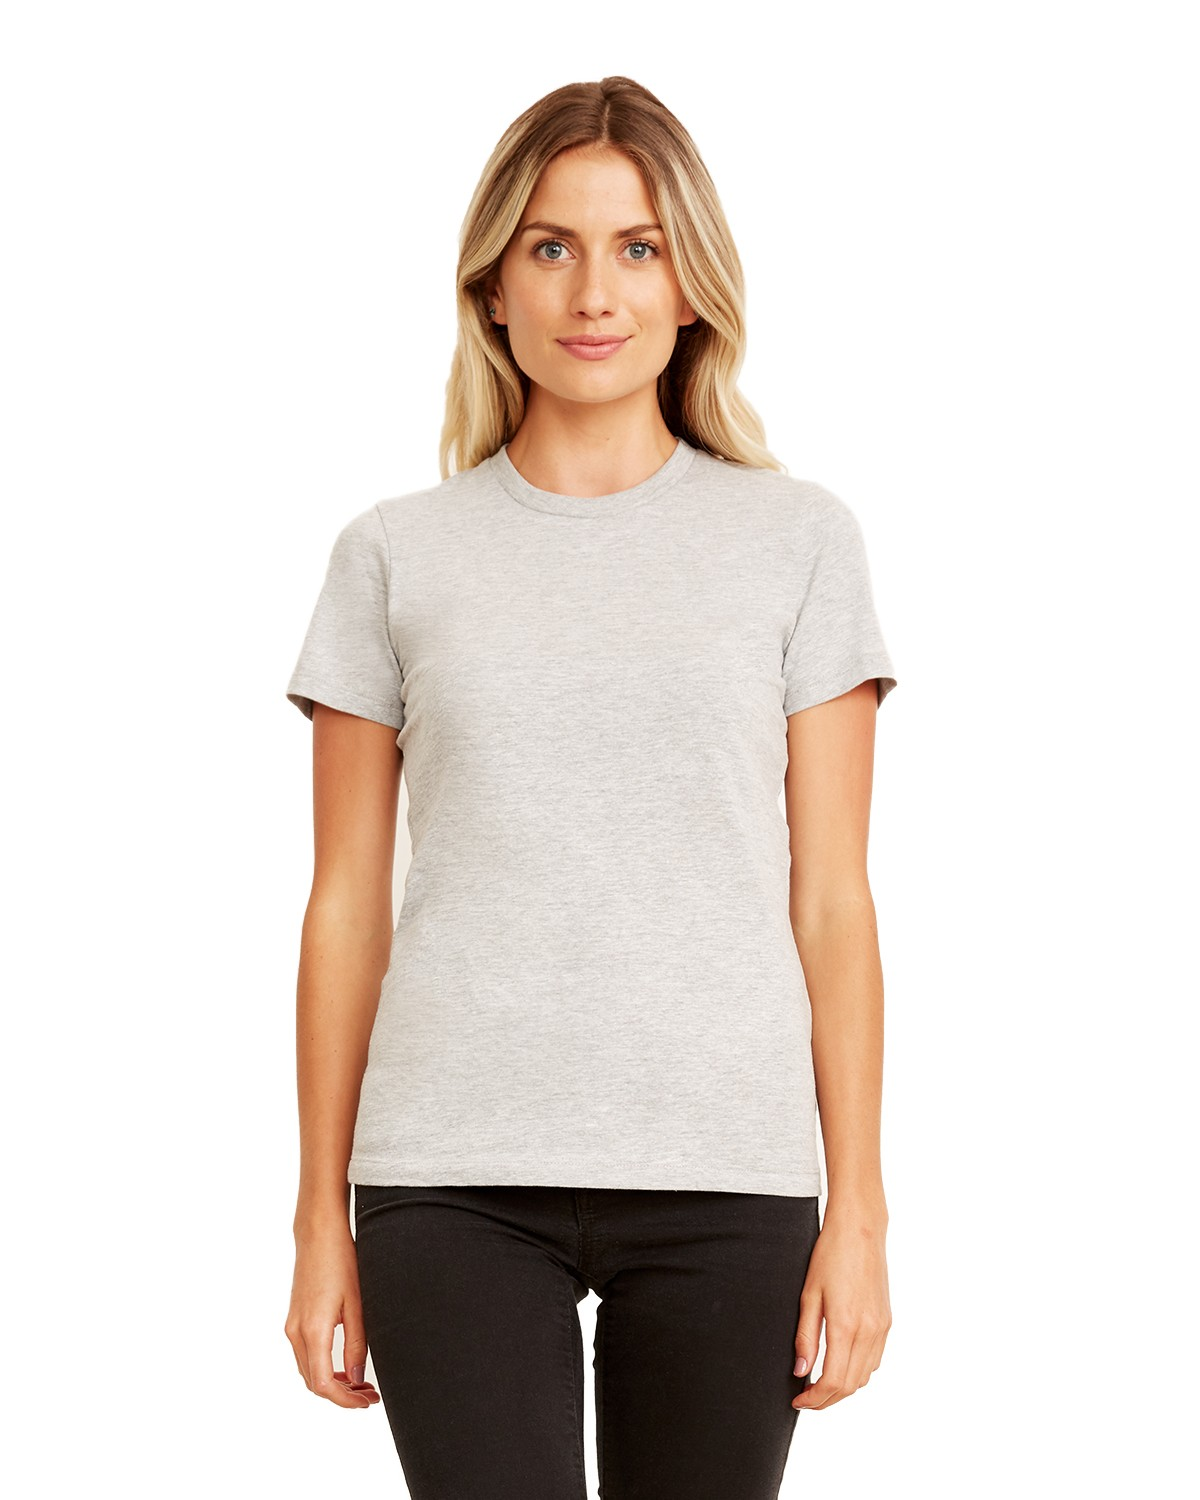 3900A Next Level HEATHER GRAY